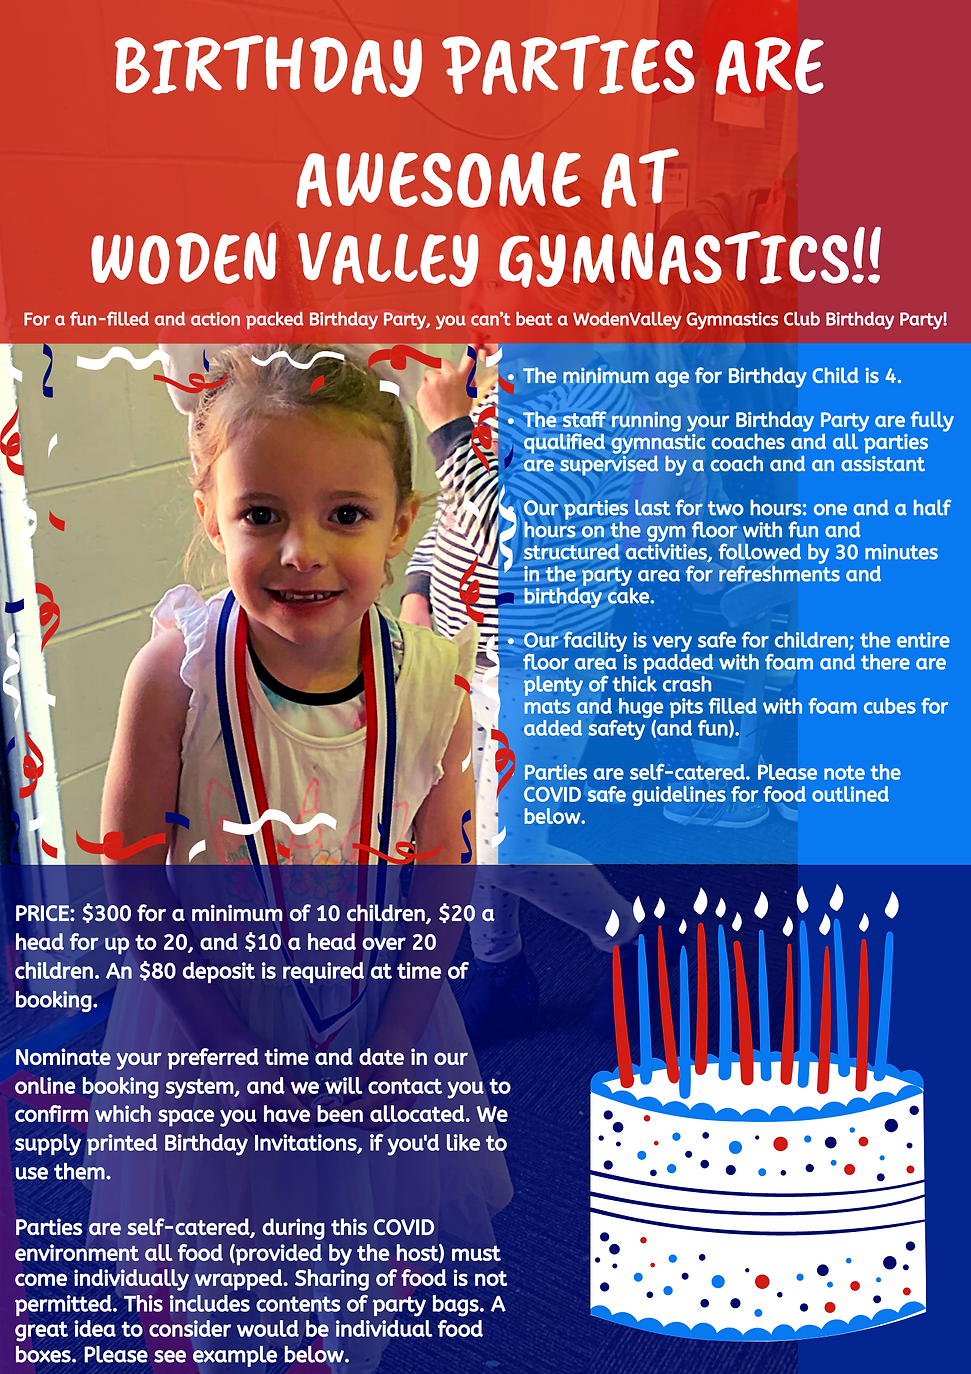 Birthday Parties are awesome at Woden Va